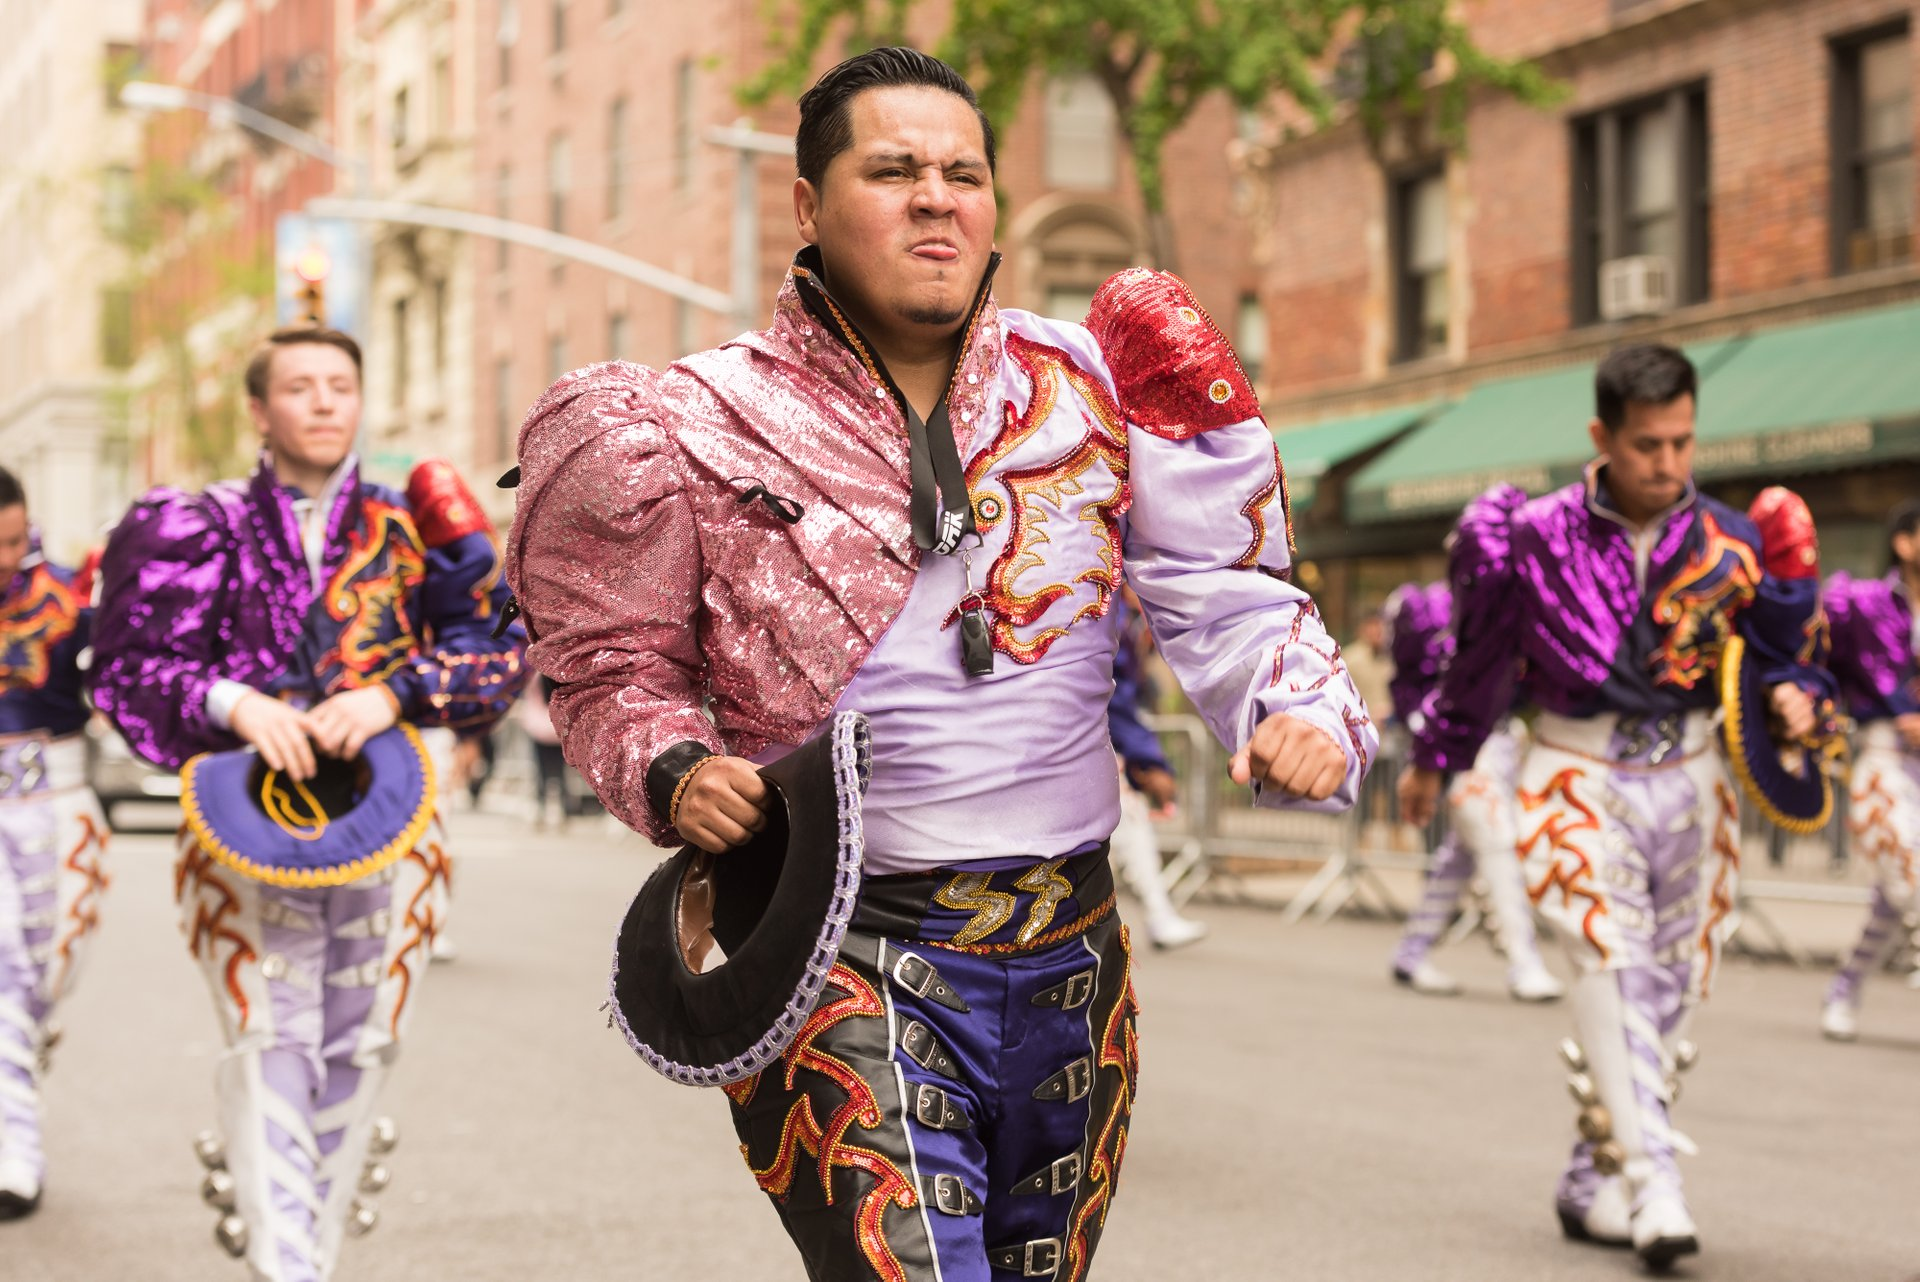 Best time for Dance Parade & Festival in New York 2020